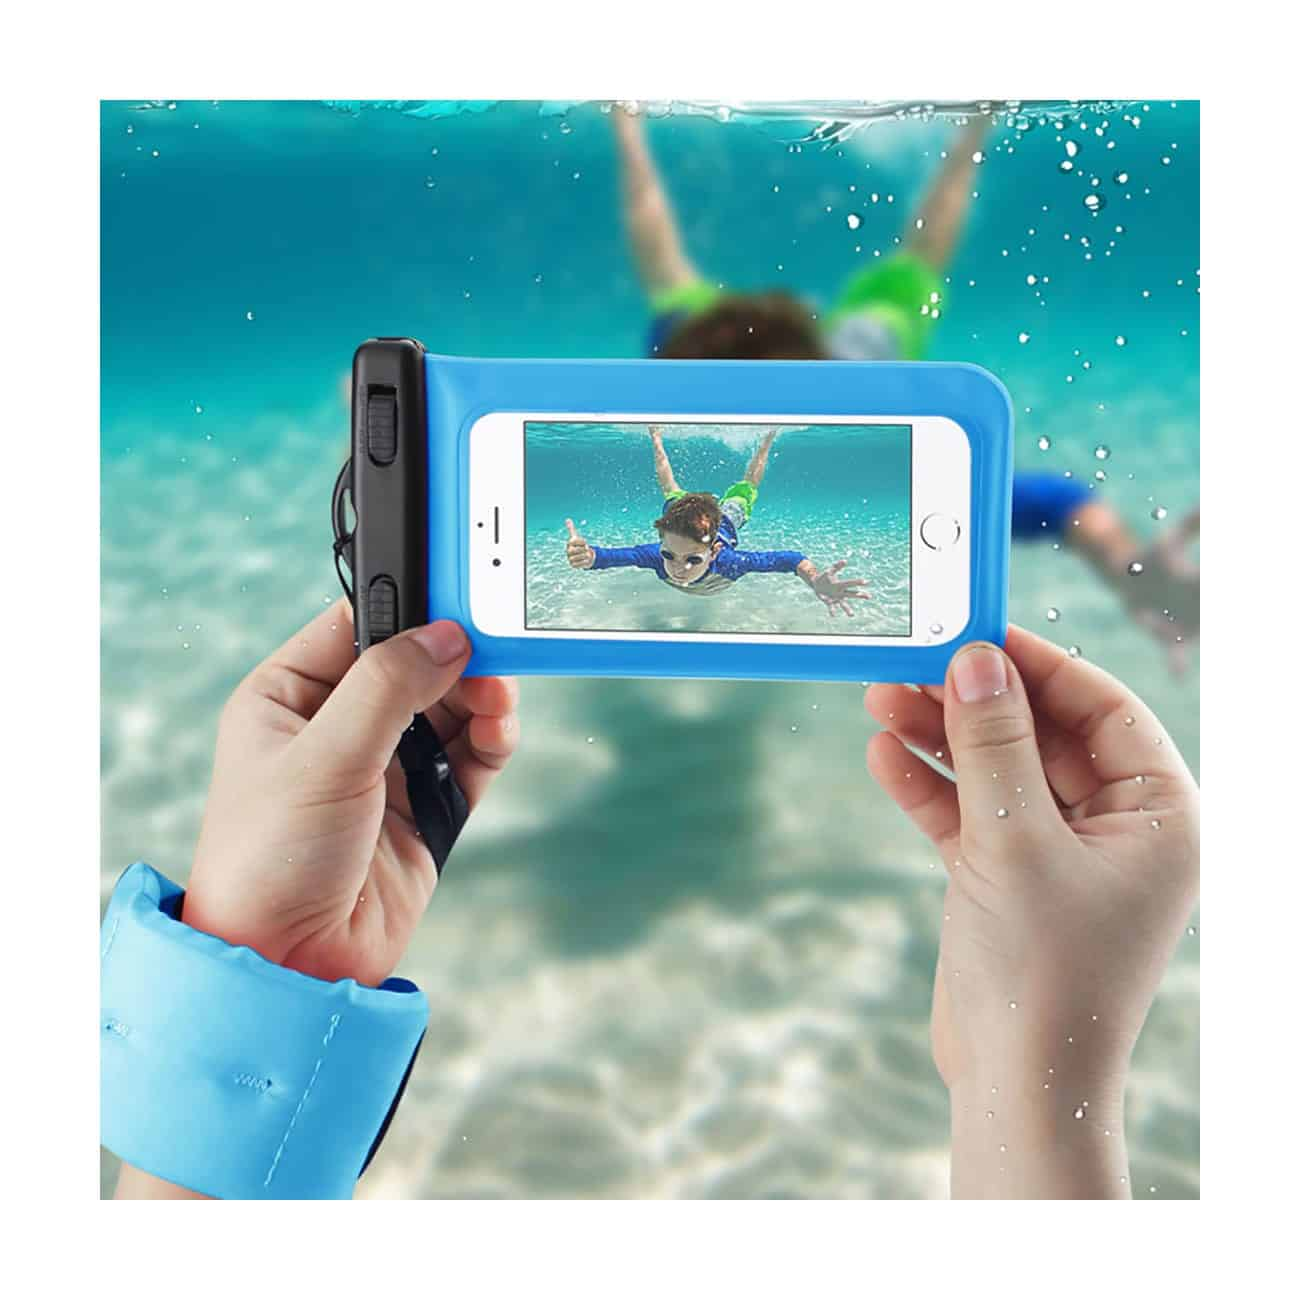 WATERPROOF CASE FOR 4.7 INCHES DEVICES WITH FLOATING ADJUSTABLE WRIST STRAP IN BLUE